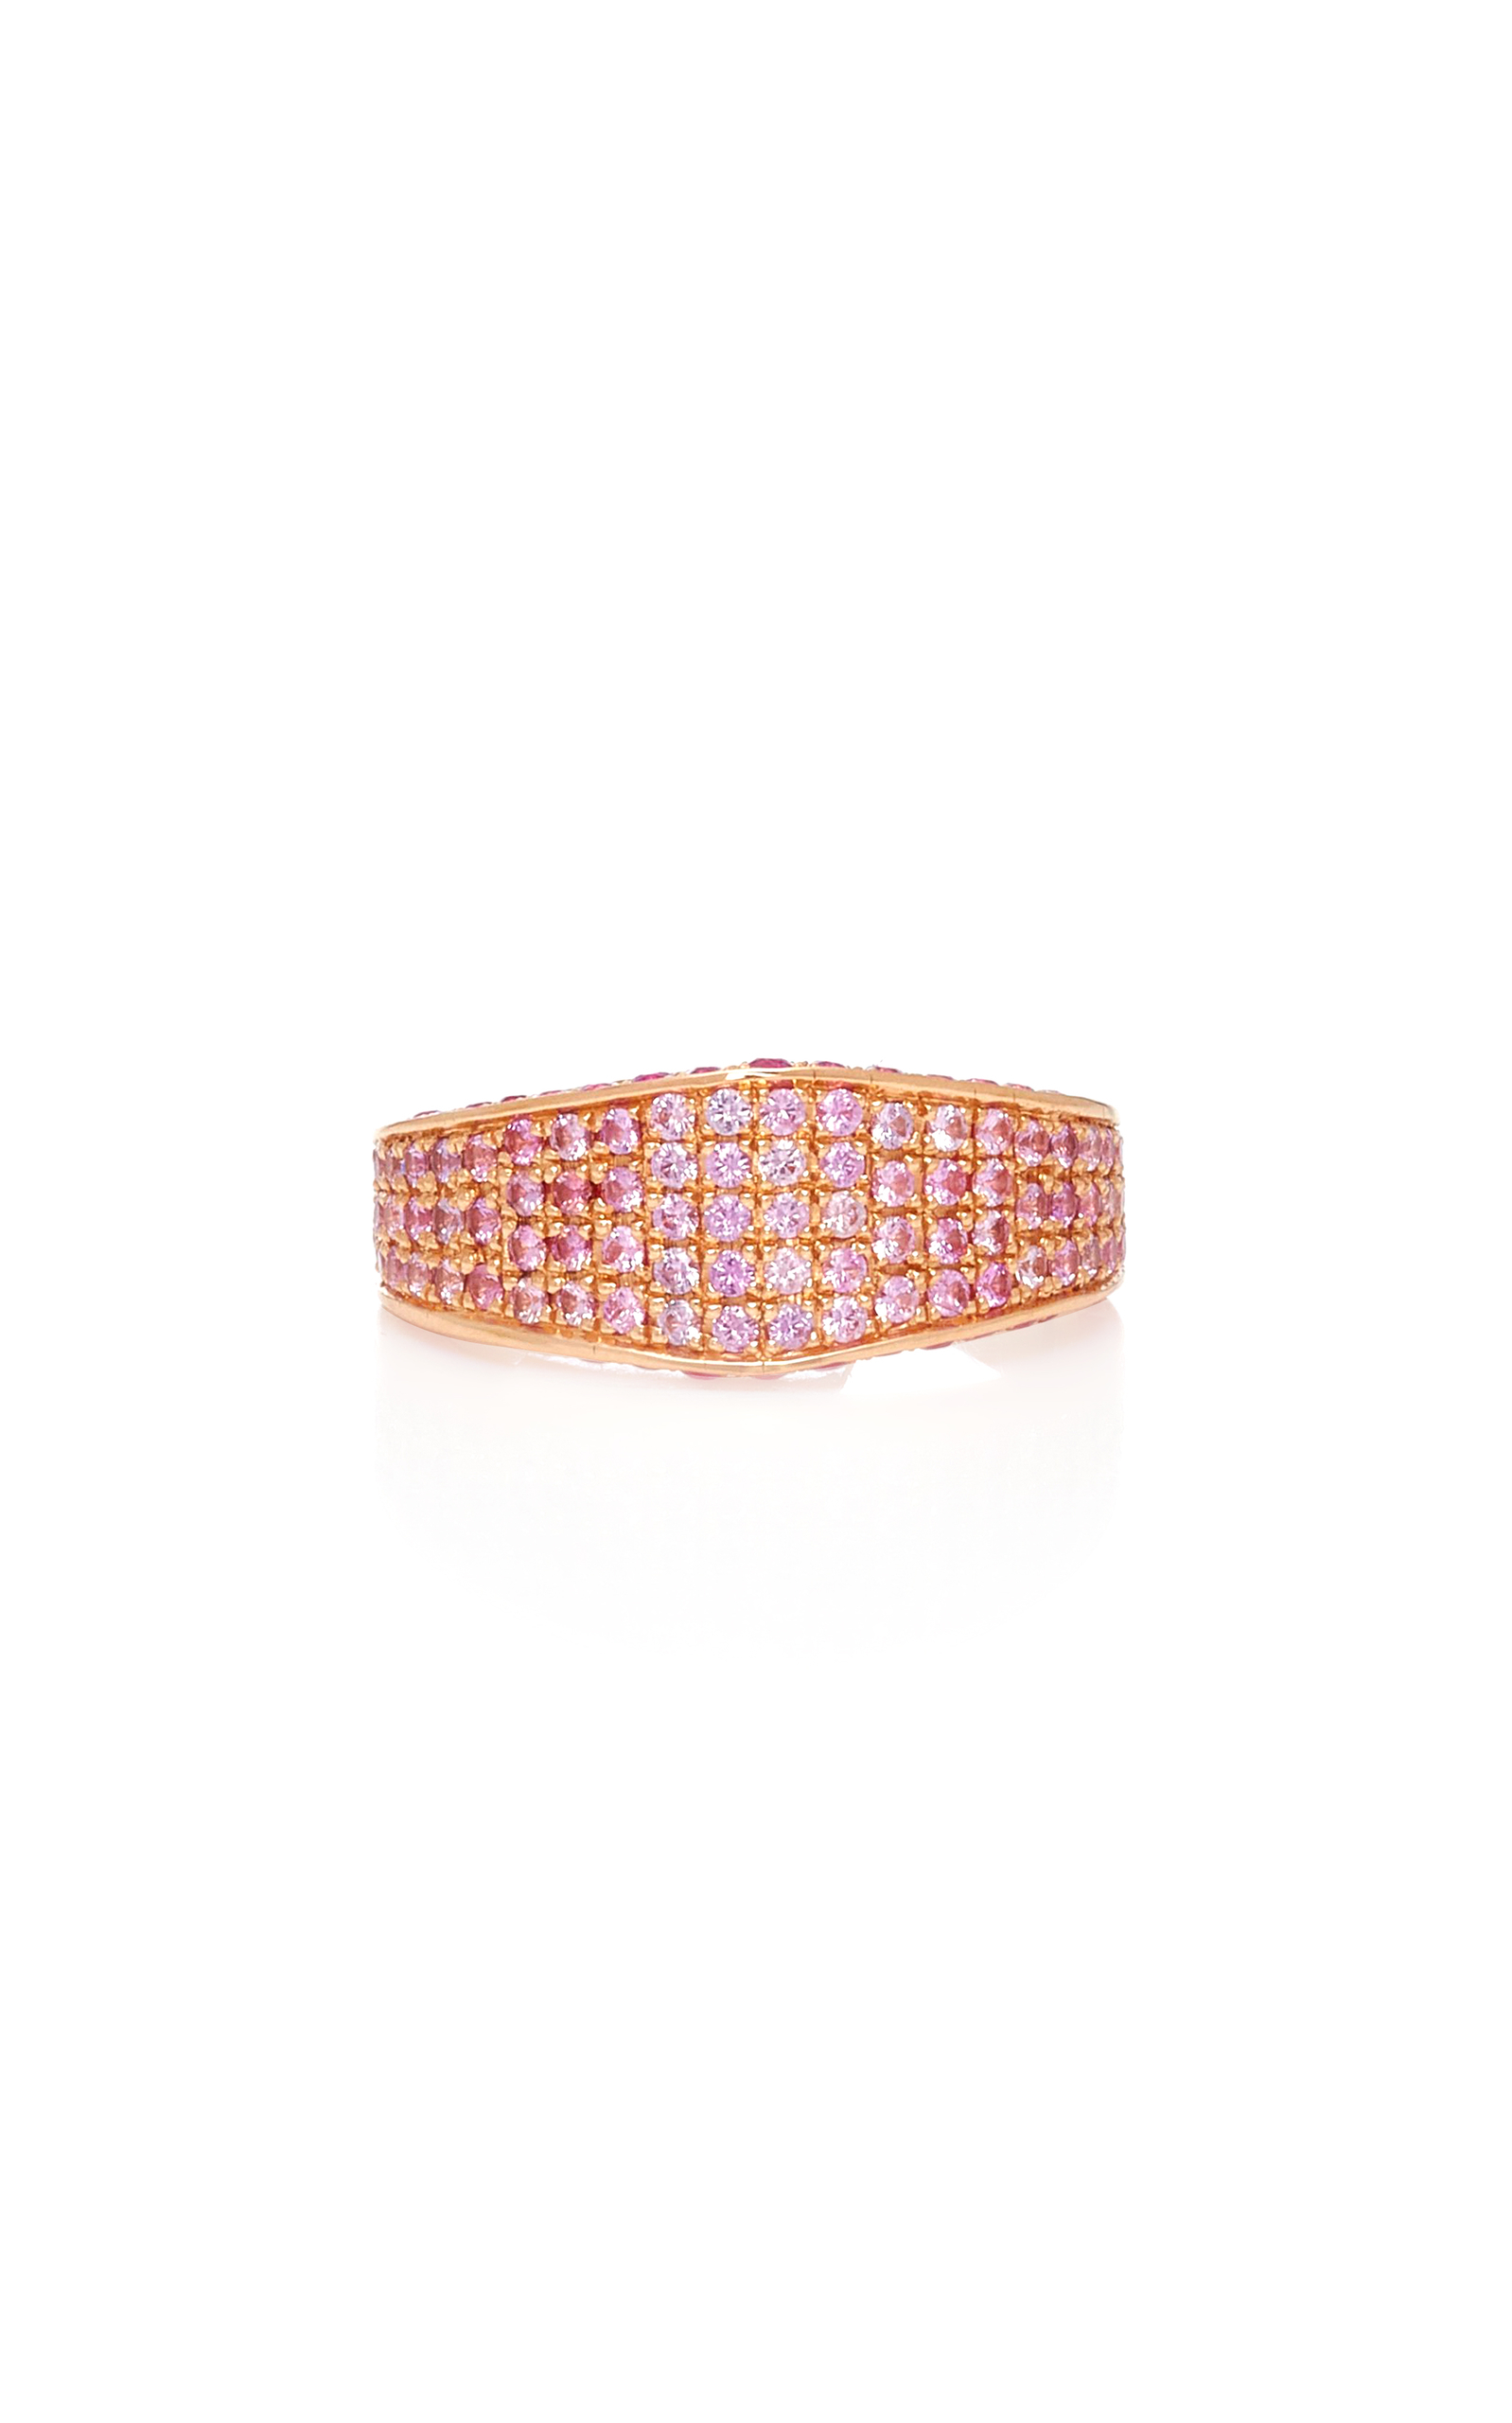 RALPH MASRI Sapphire Band Ring in Pink